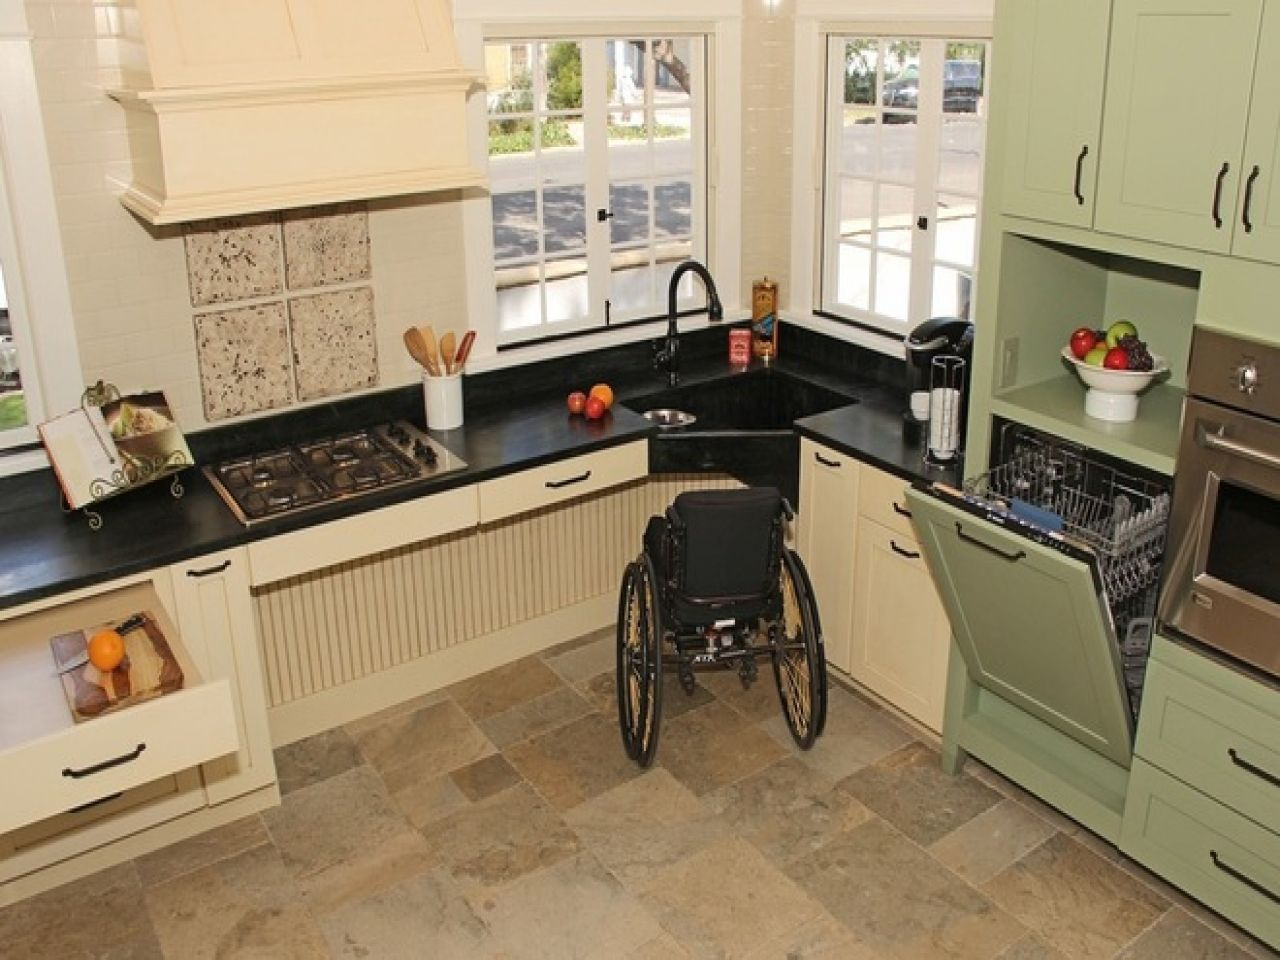 Designer sinks kitchens wheelchair accessible kitchen design throughout wheelchair accessible - Accessible kitchen design ...